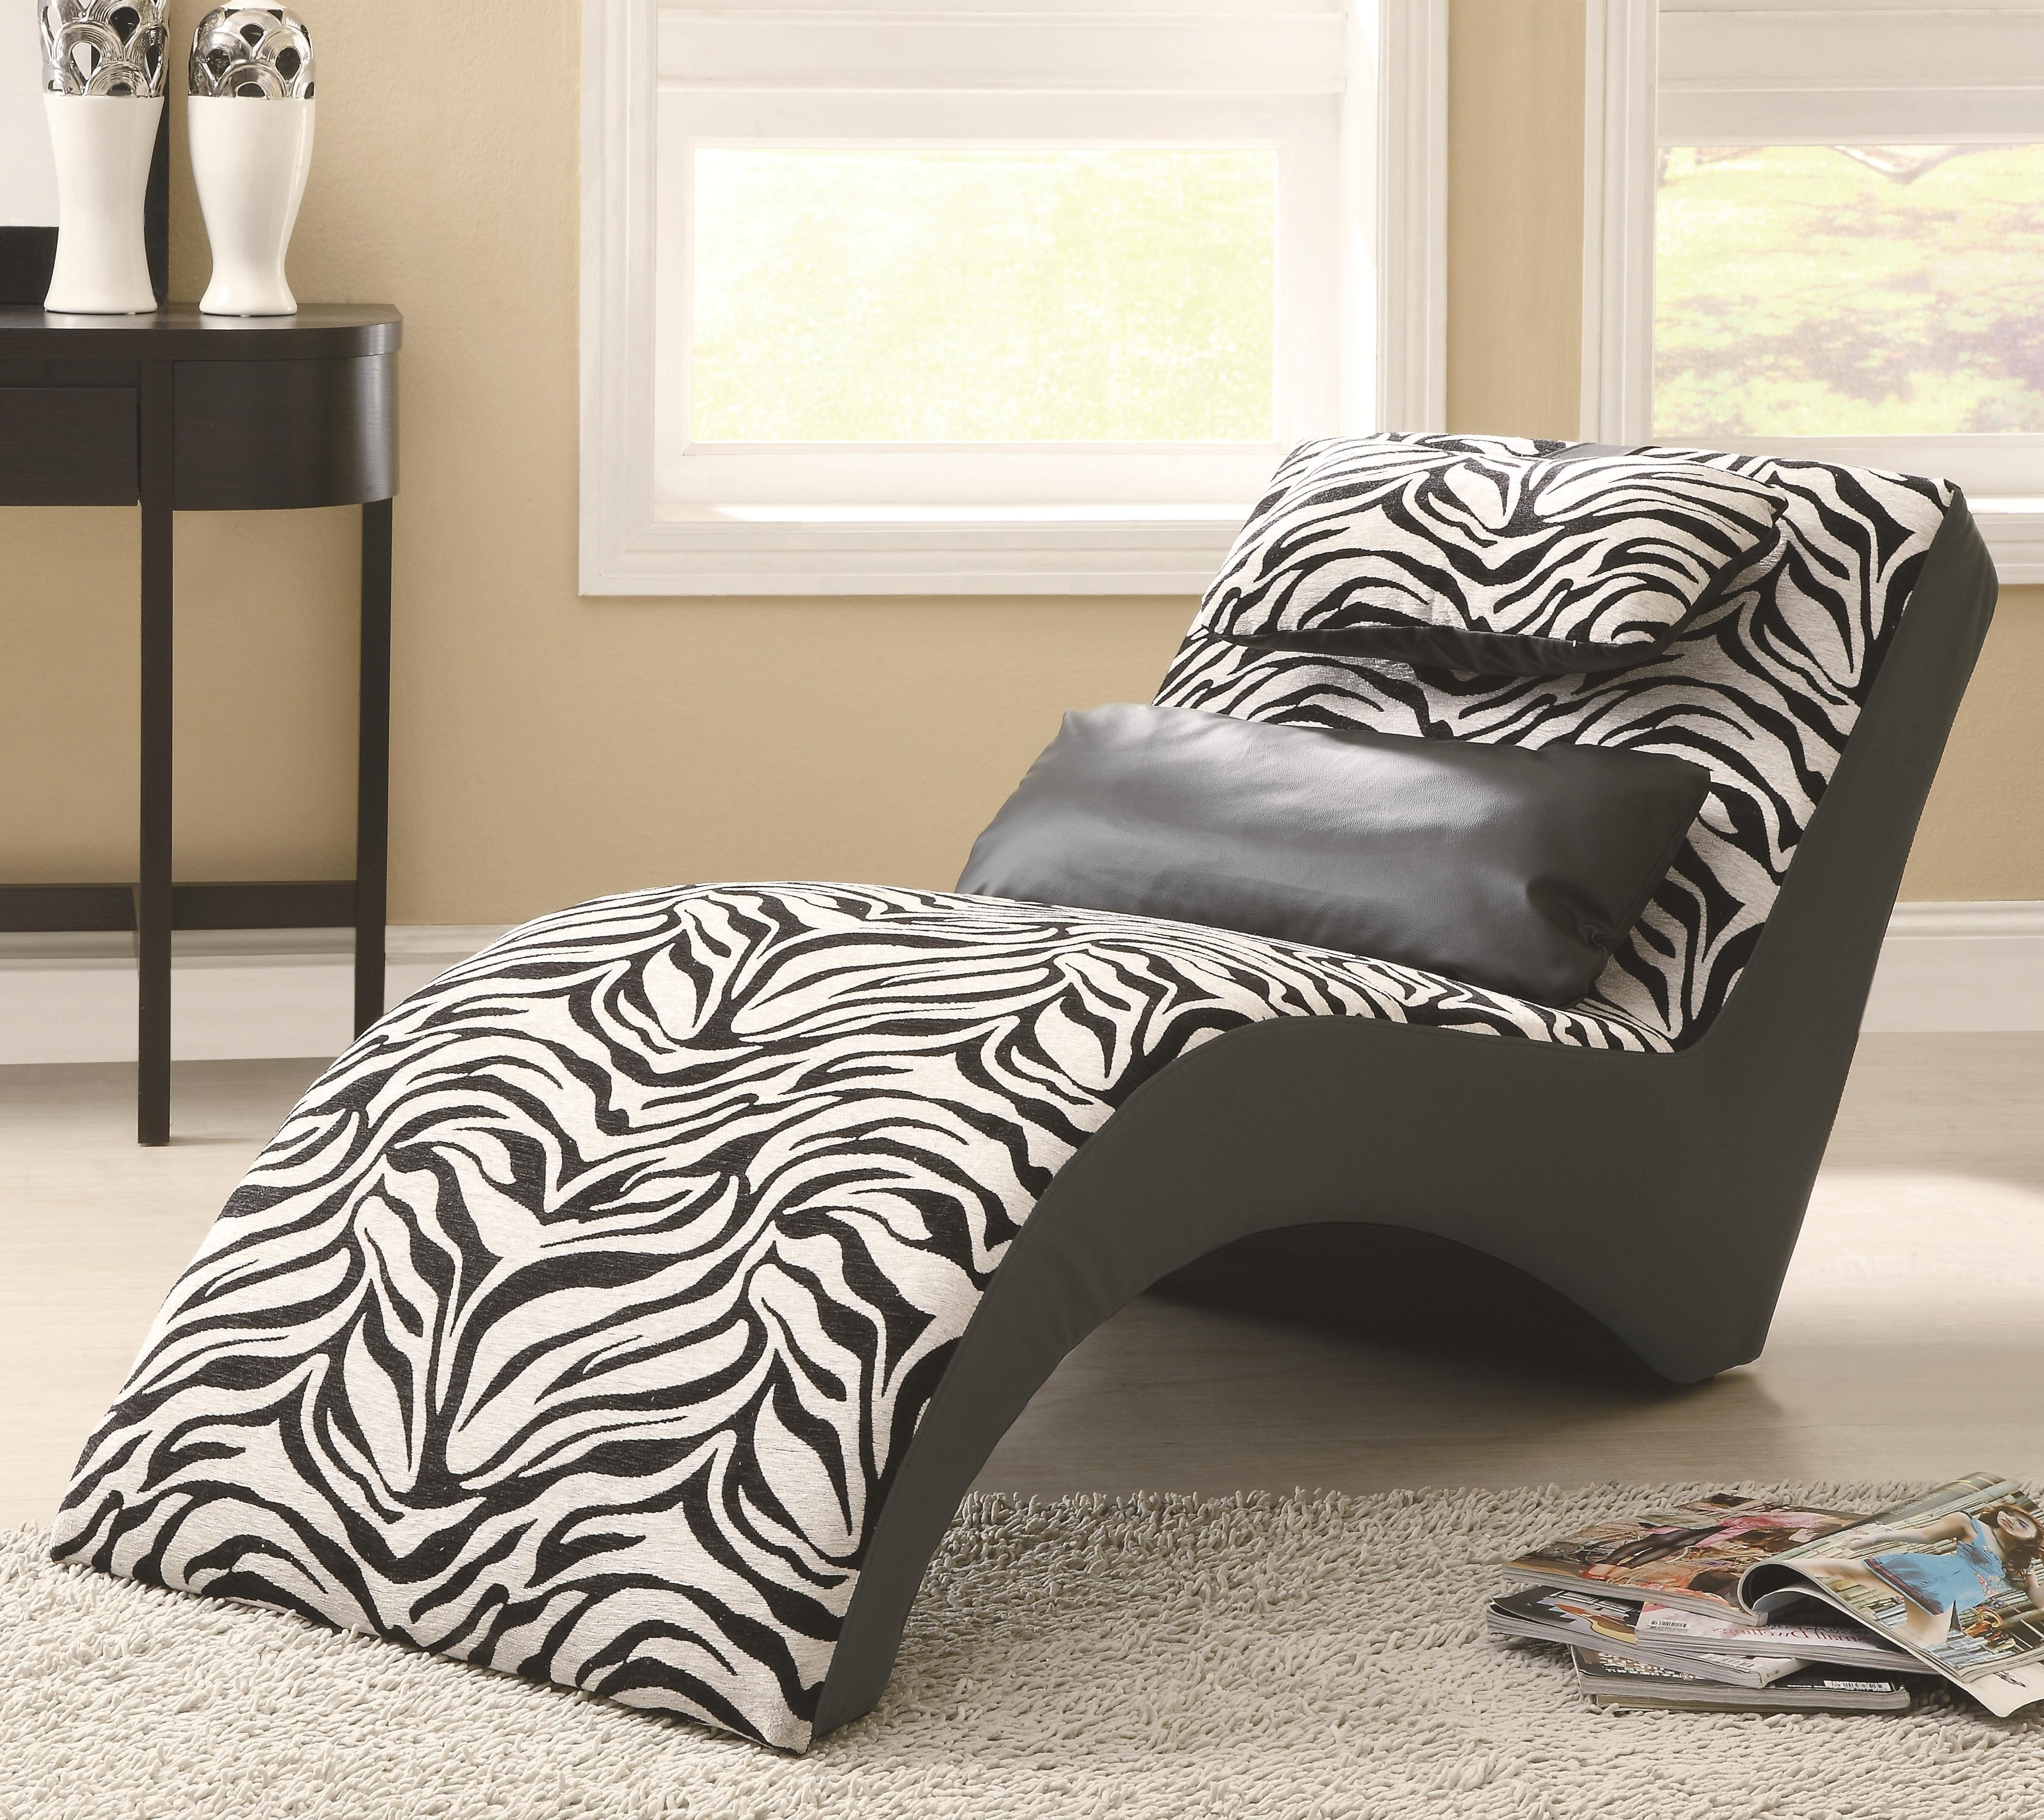 Zebra Print Chaise Lounge Chairs Within Latest Furniture : Modern Zebra Print Modern Lounge Chair Near Black (View 6 of 15)